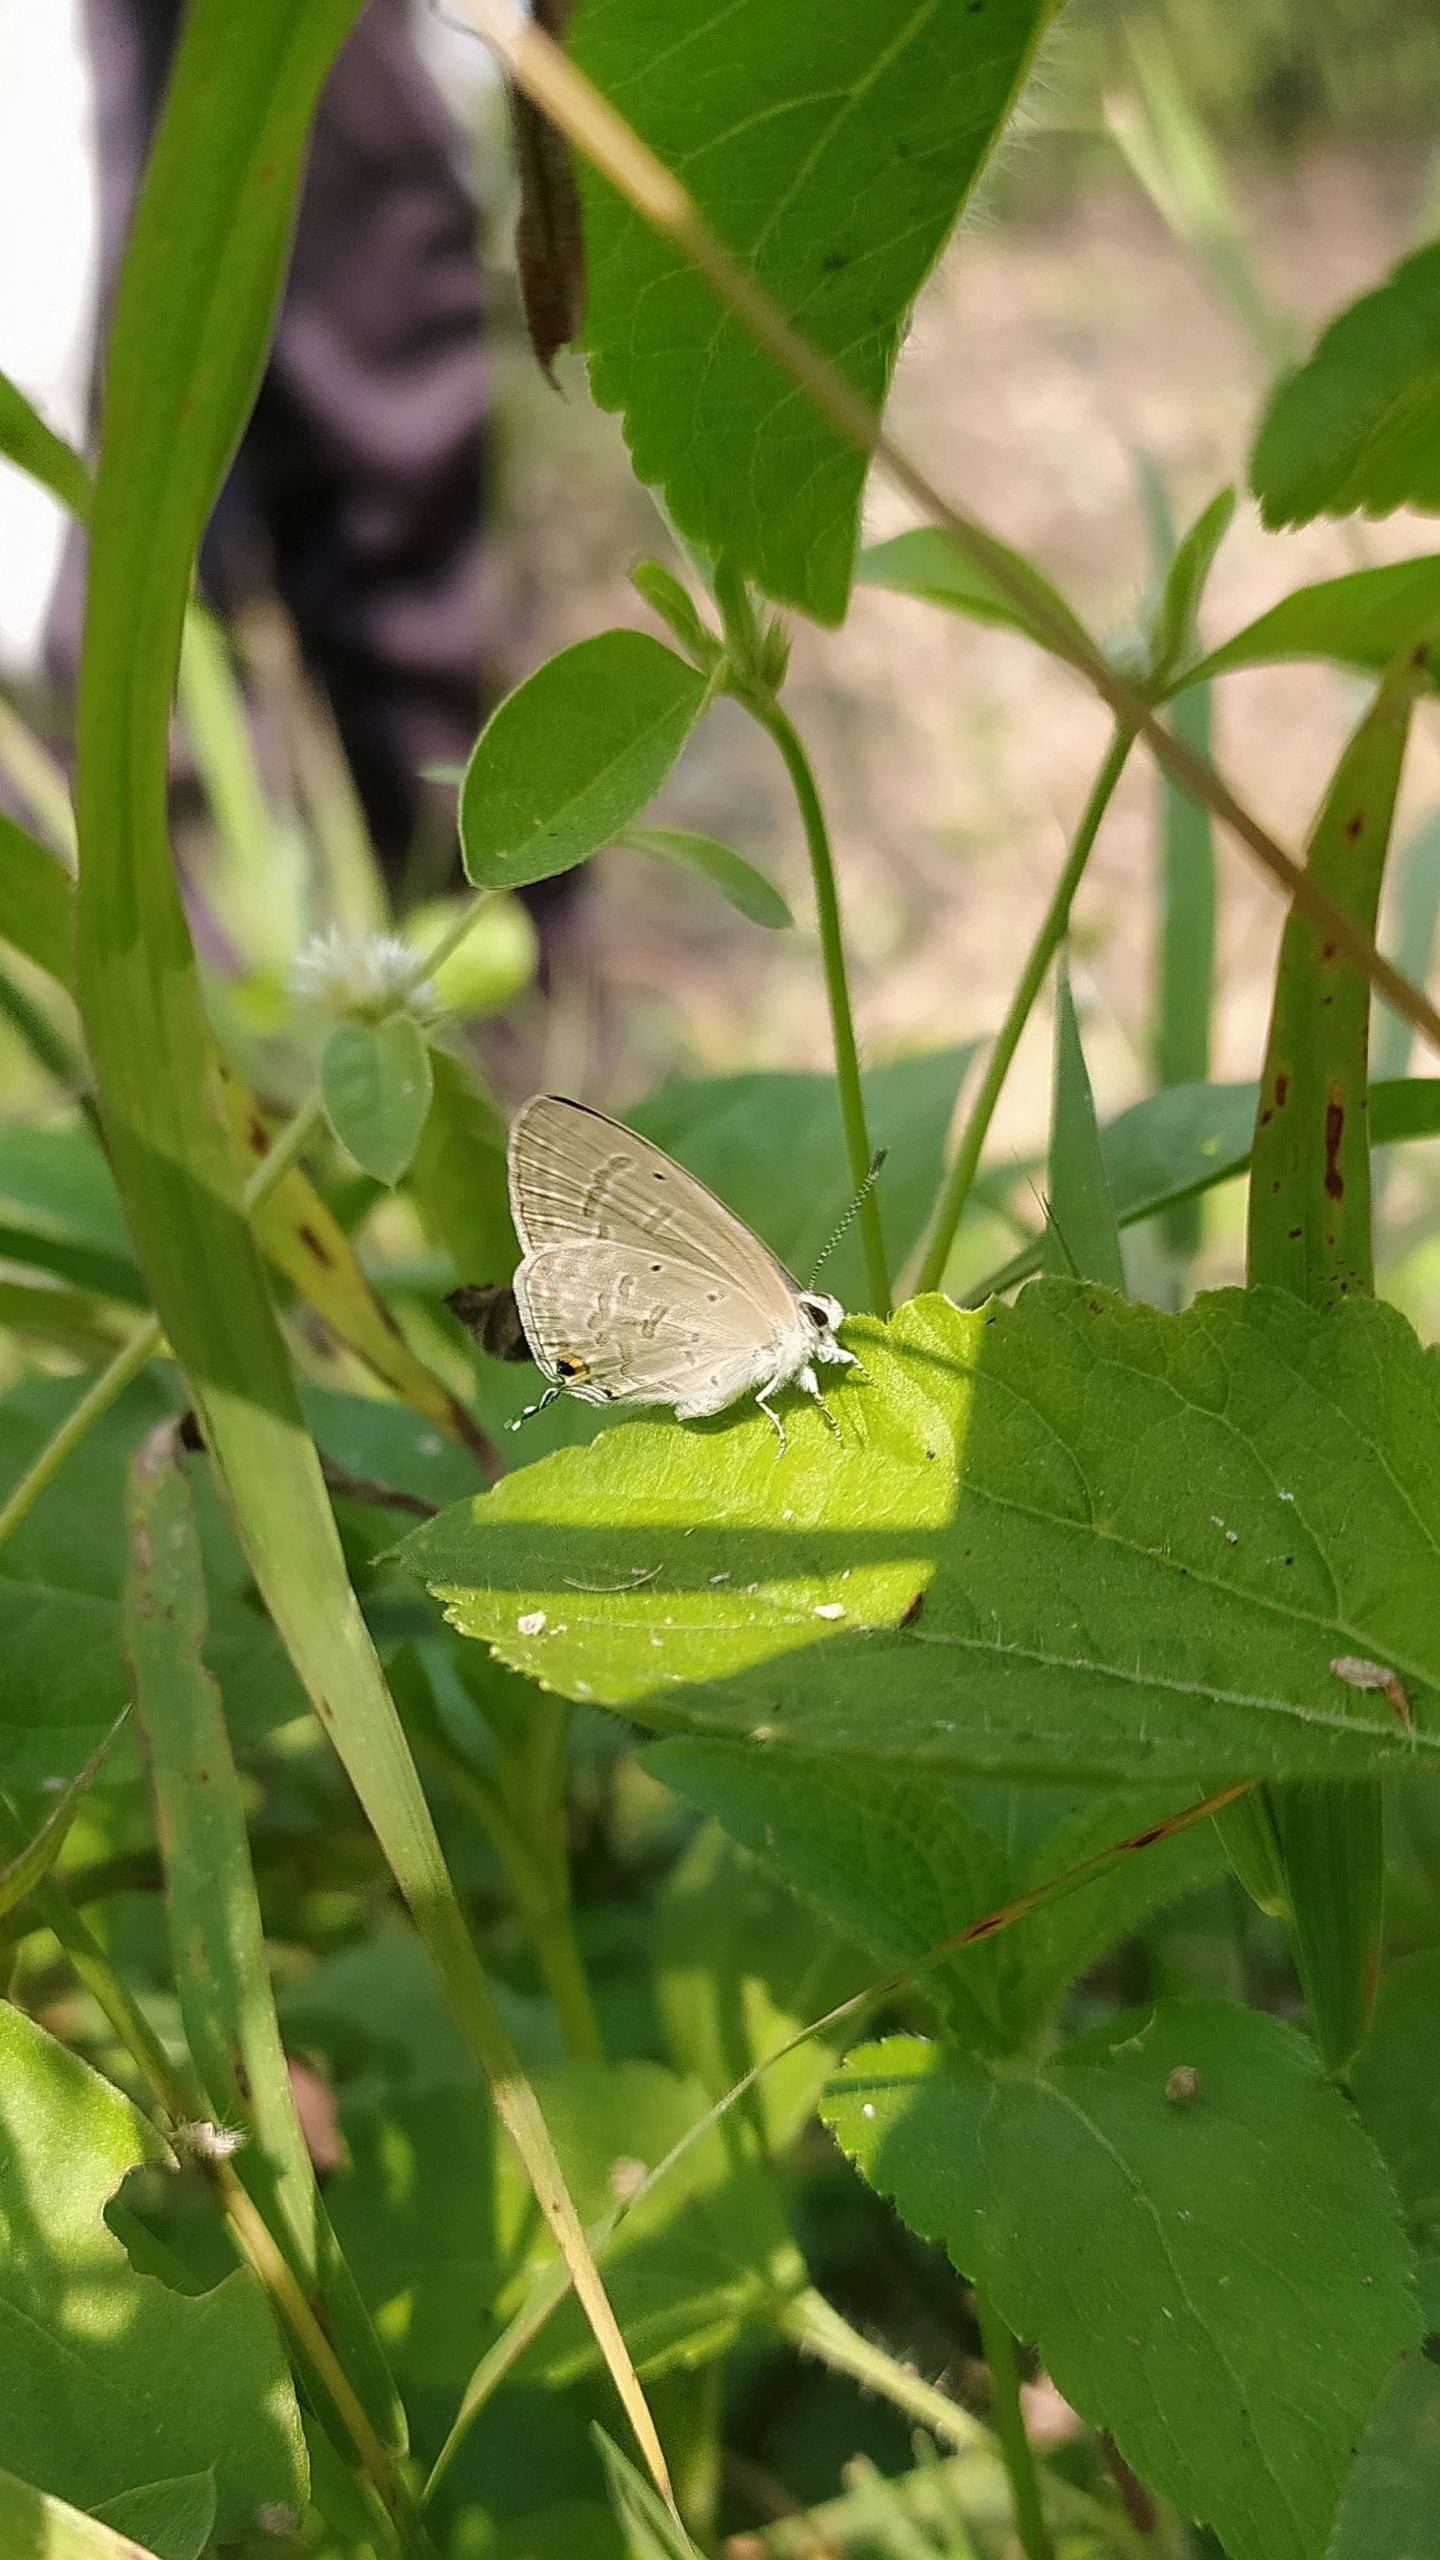 A butterfly on a leaf